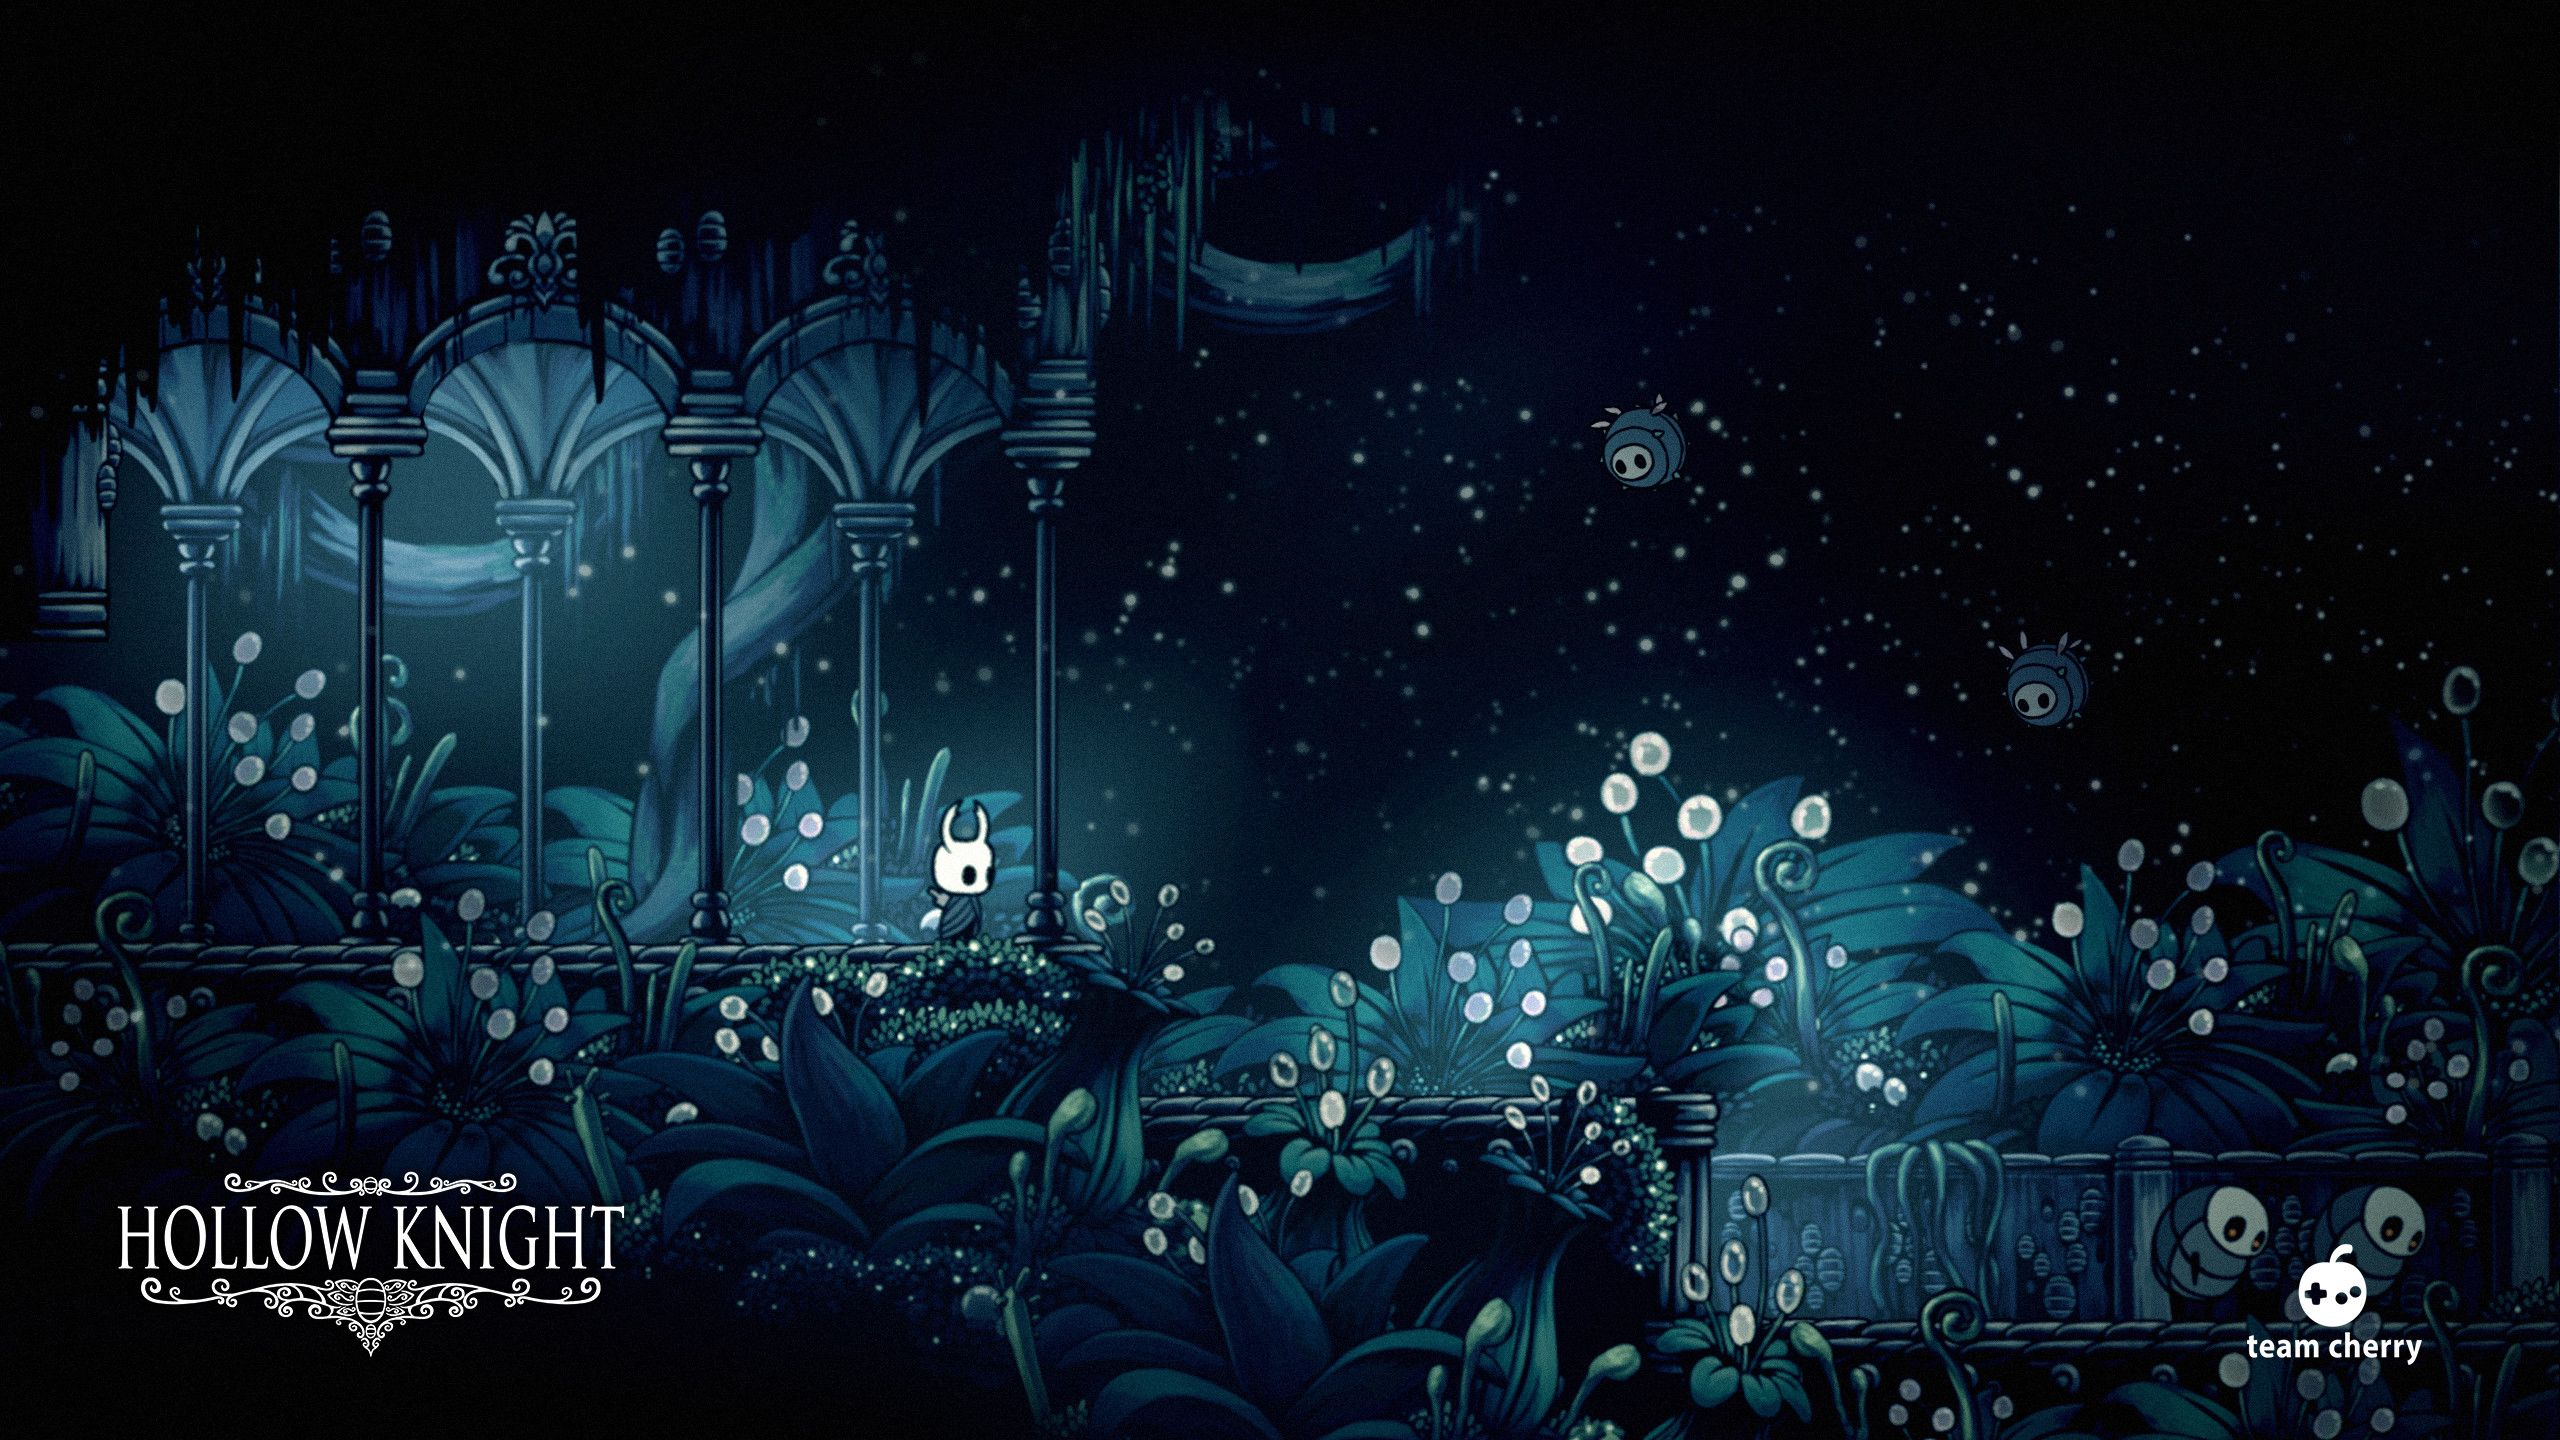 hollow knight images